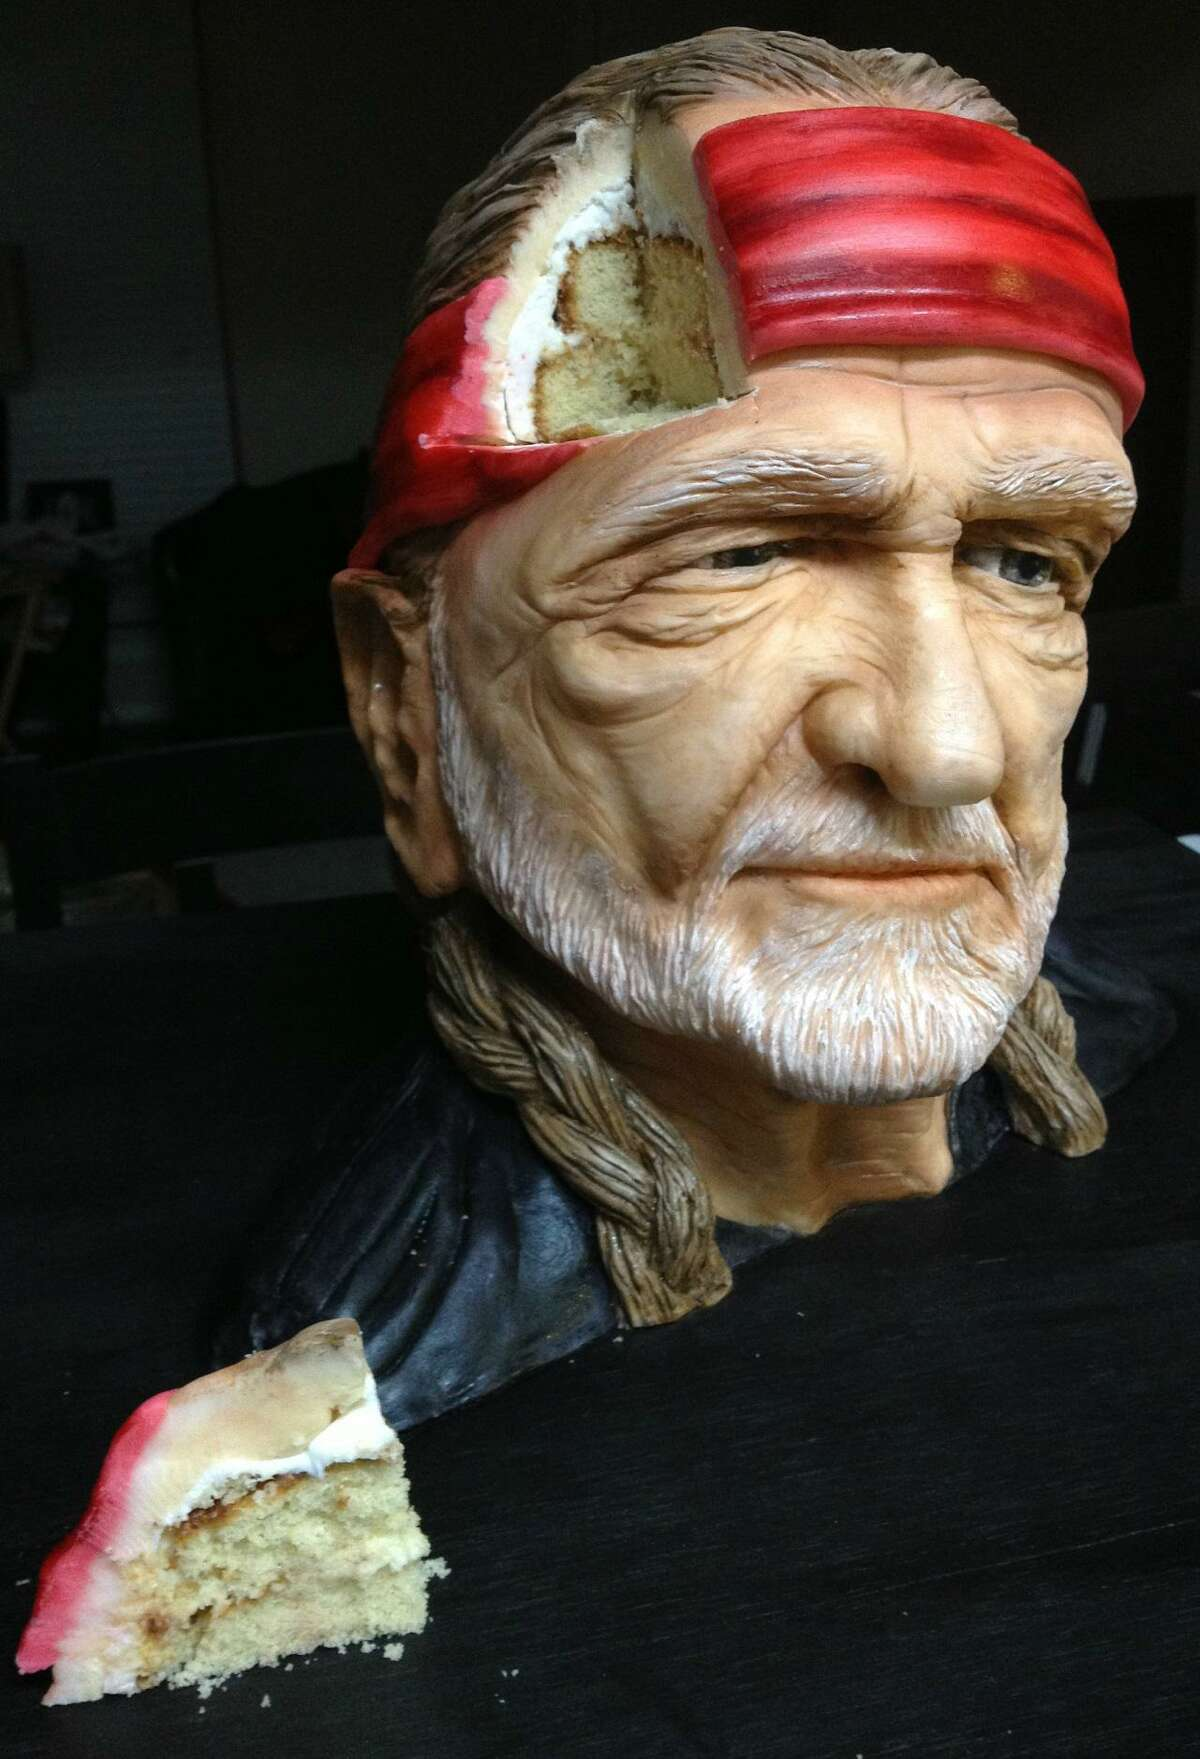 Is this Willie Nelson? Nope, it's a cake. Natalie Sideserf of Sideserf Cake Studio has been making realistic cakes since 2012.